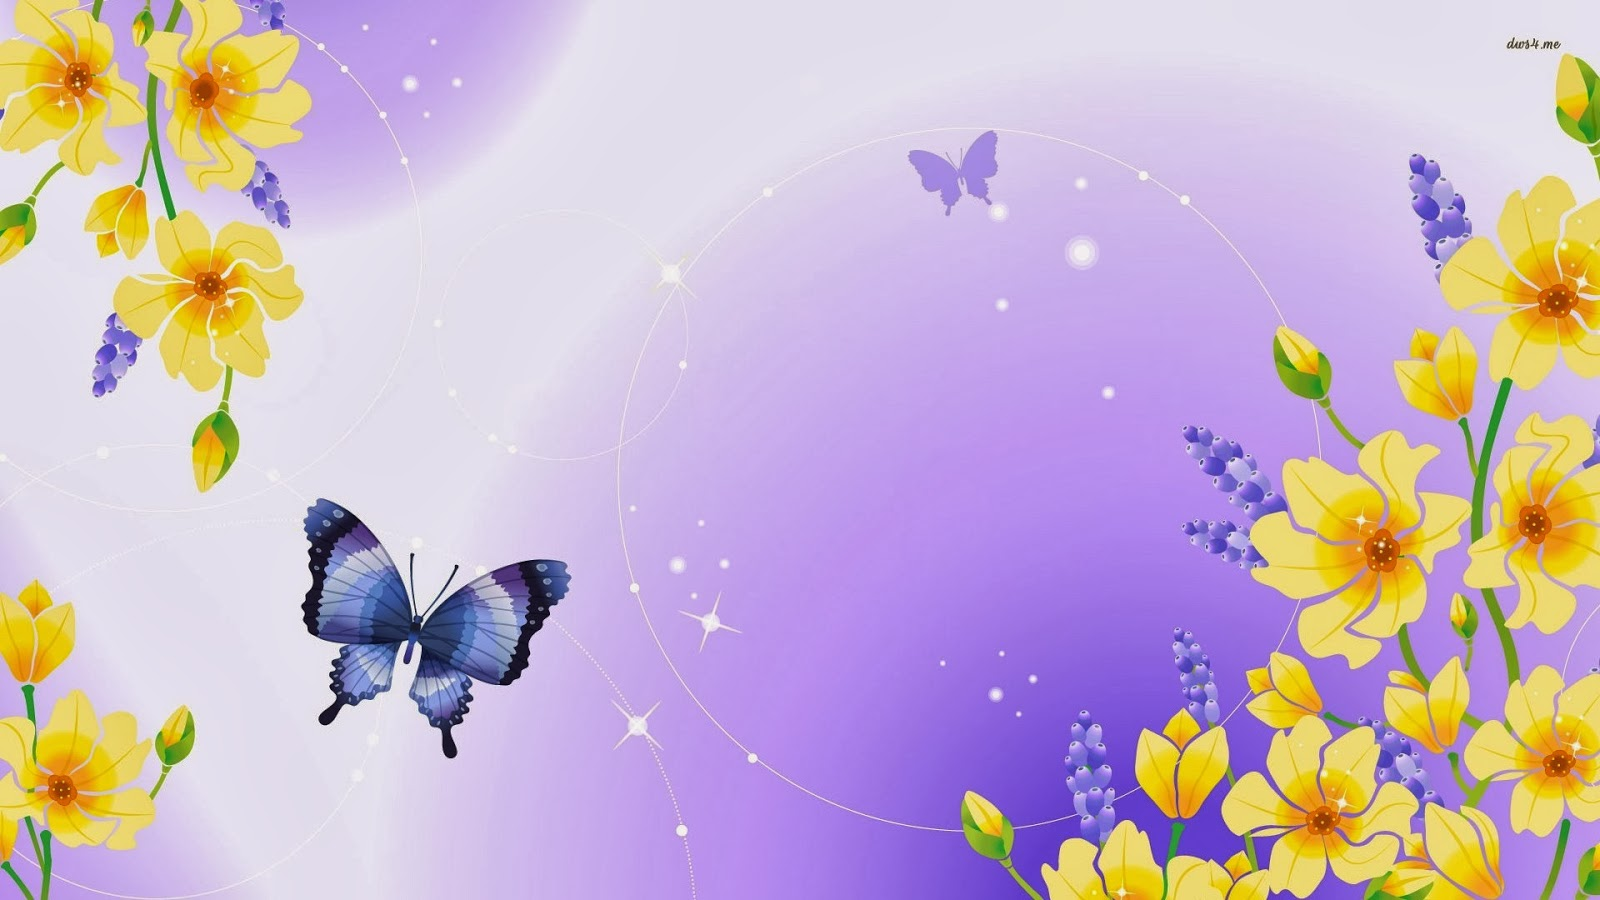 Download Cute Butterfly Images Wallpaper Click Image to Download 1600x900